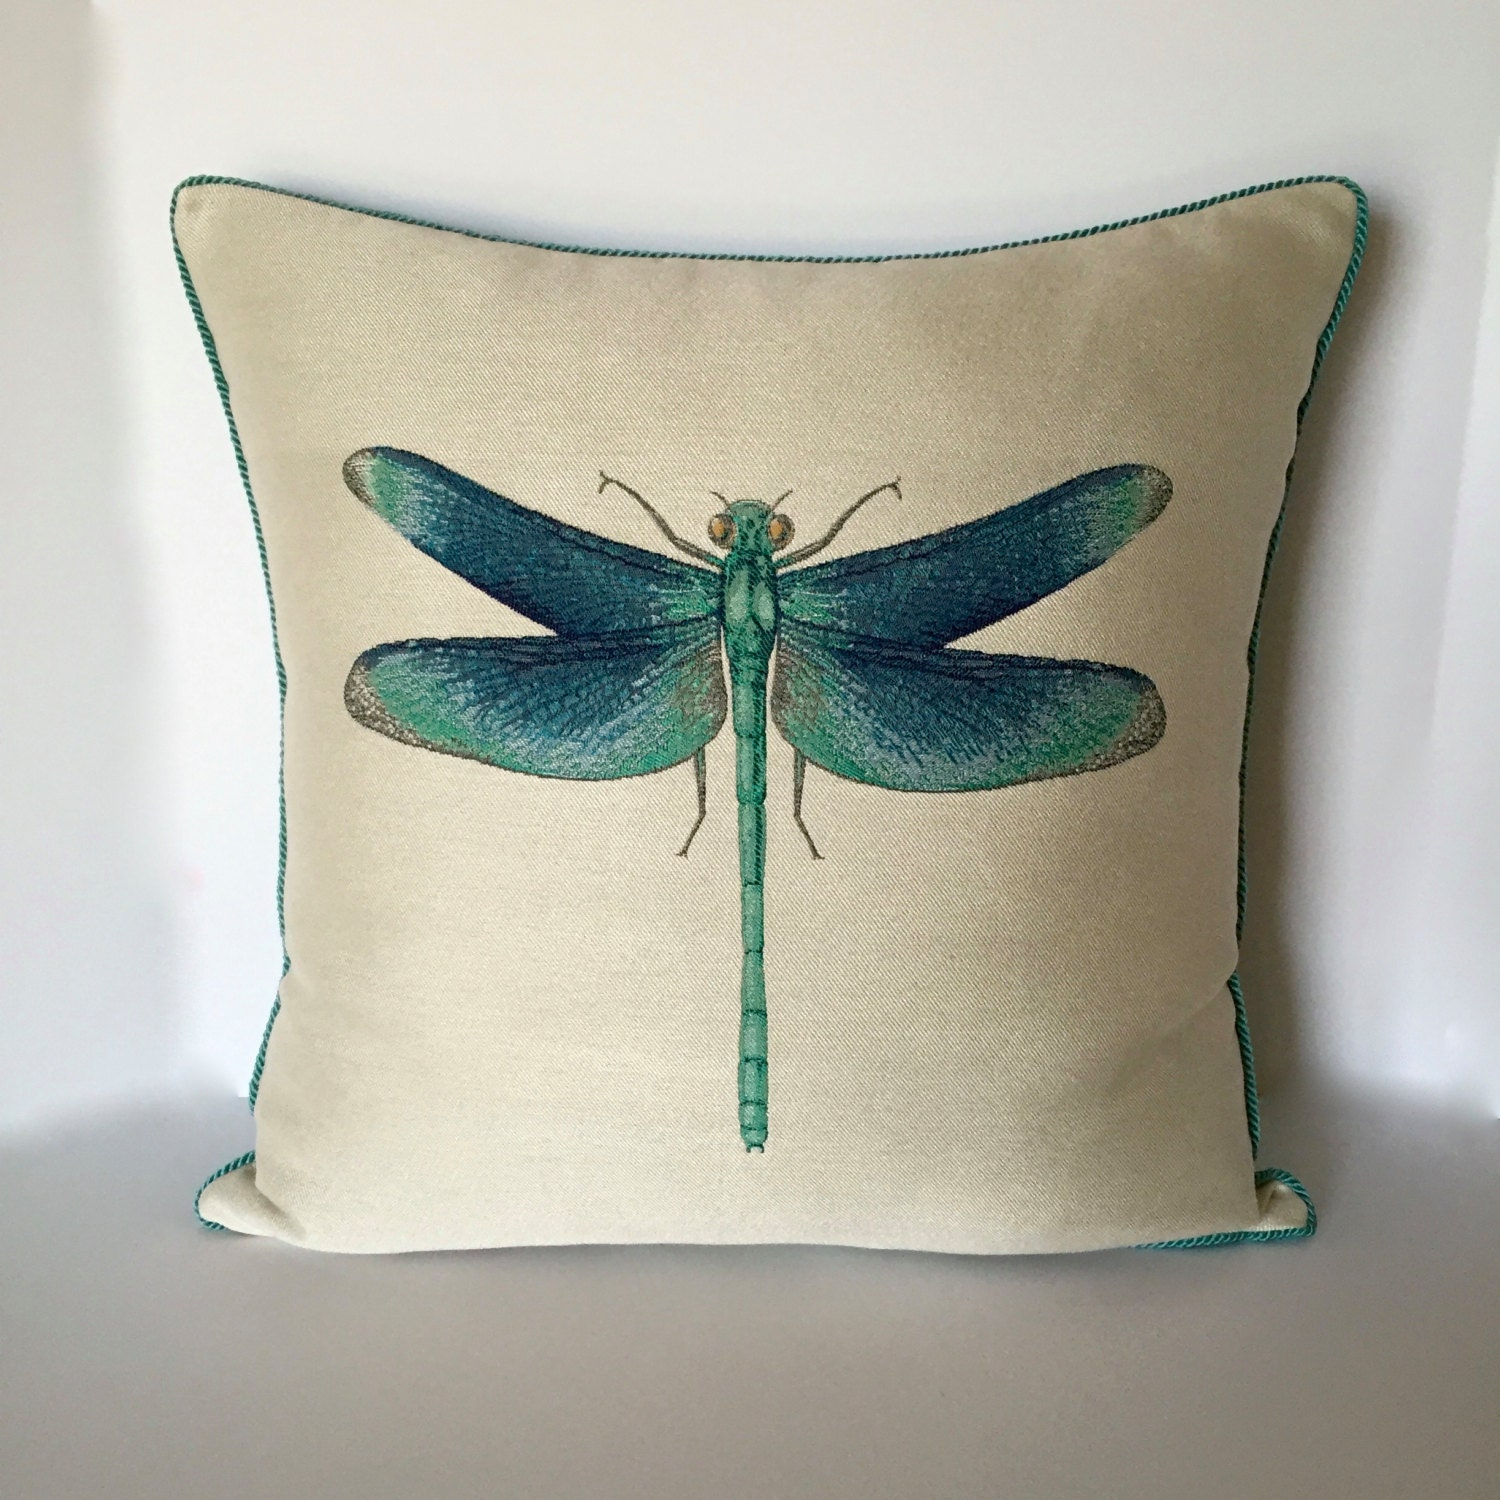 Throw Pillow With Dragonfly : Designer Pillow Dragonfly Accent Pillow Decorative Pillow